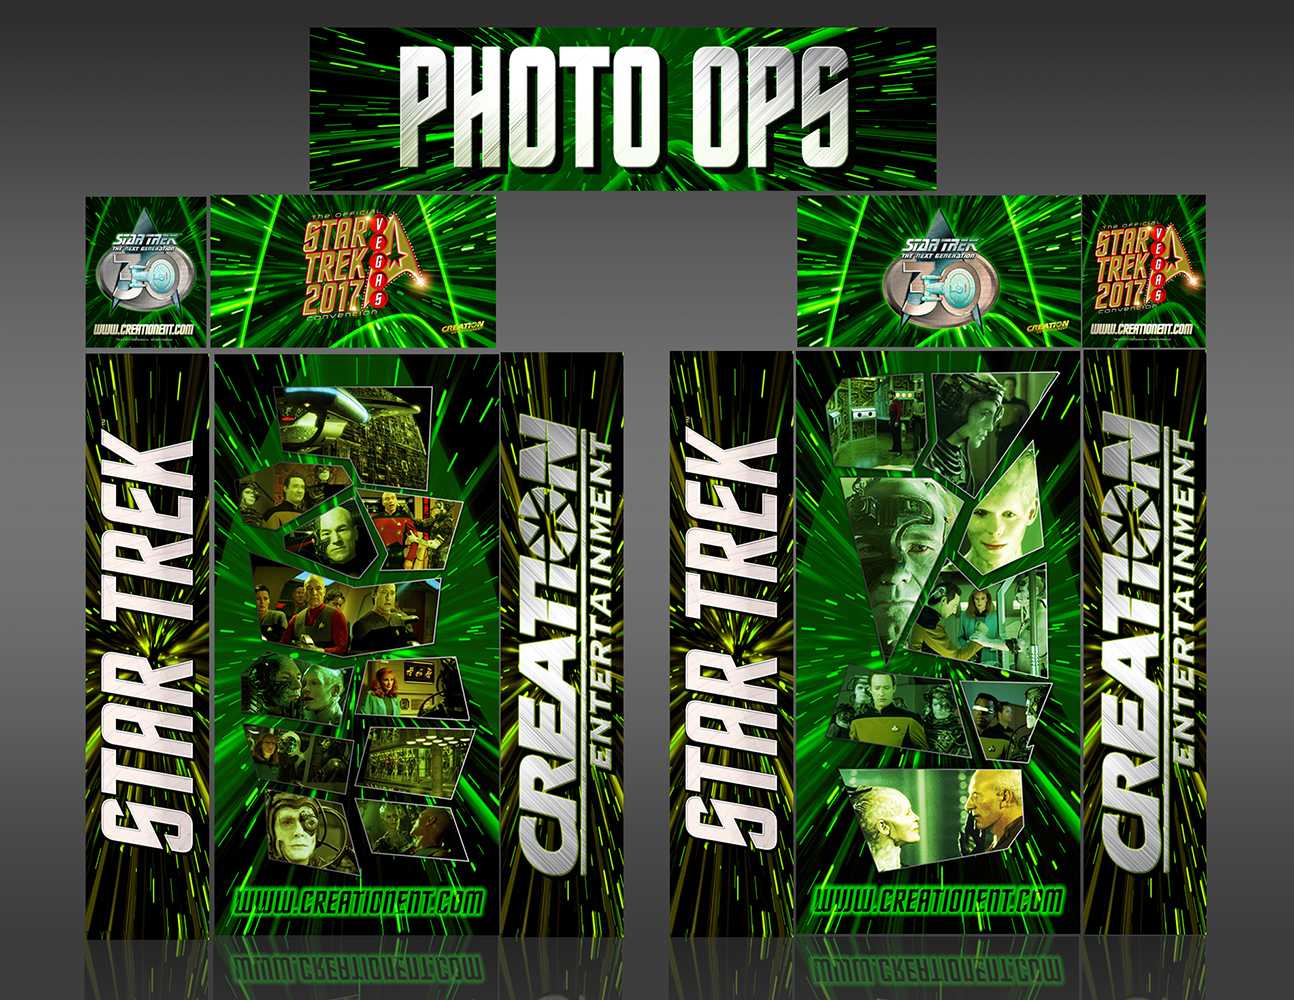 Star Trek Borg Theater Entrance Unit Convention Display Designed at Creation Entertainment